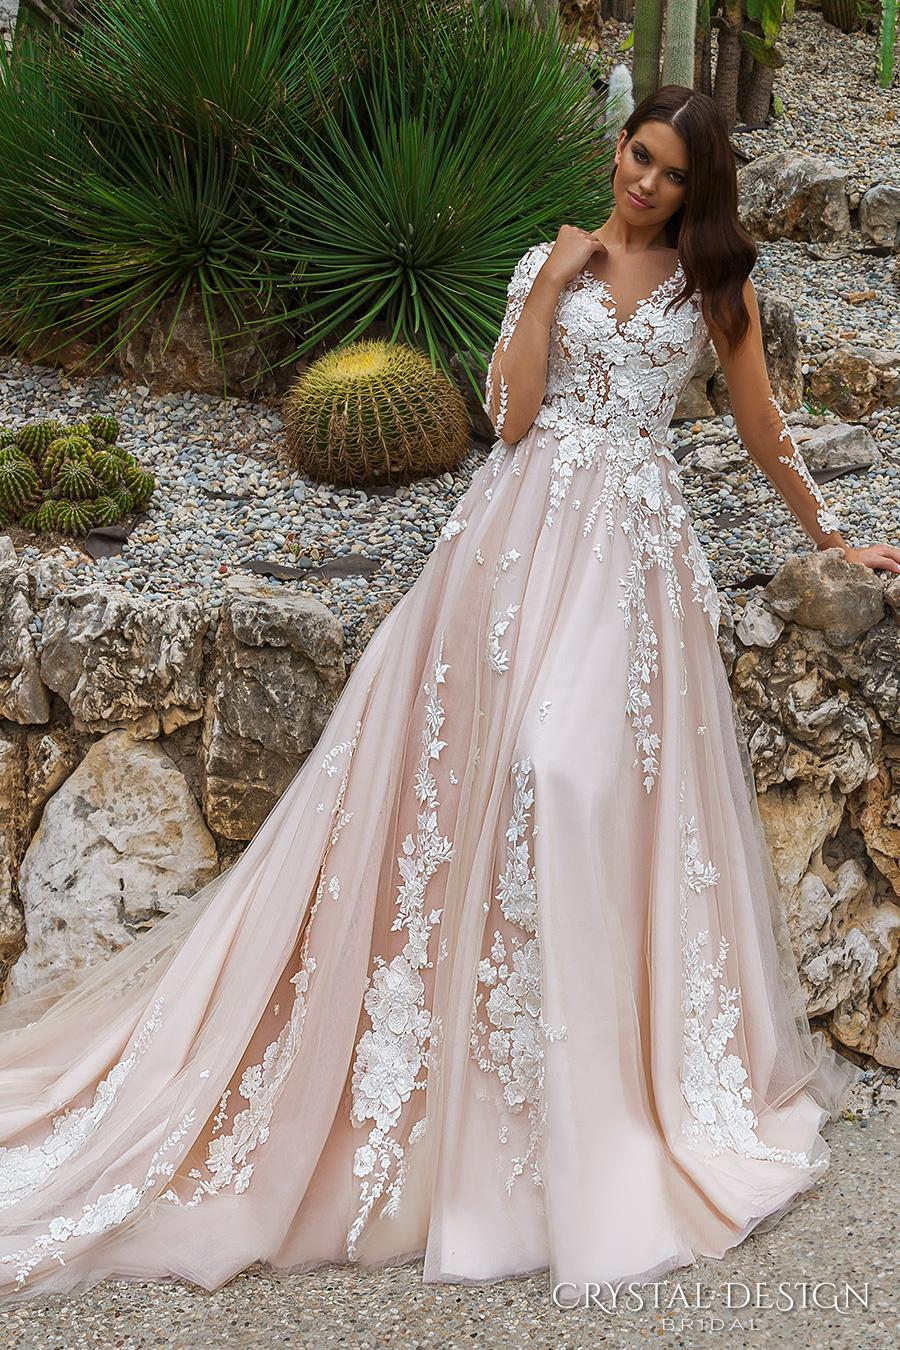 Blush Long Sleeved Princes Wedding Dresses 2017 Crystal Design ...